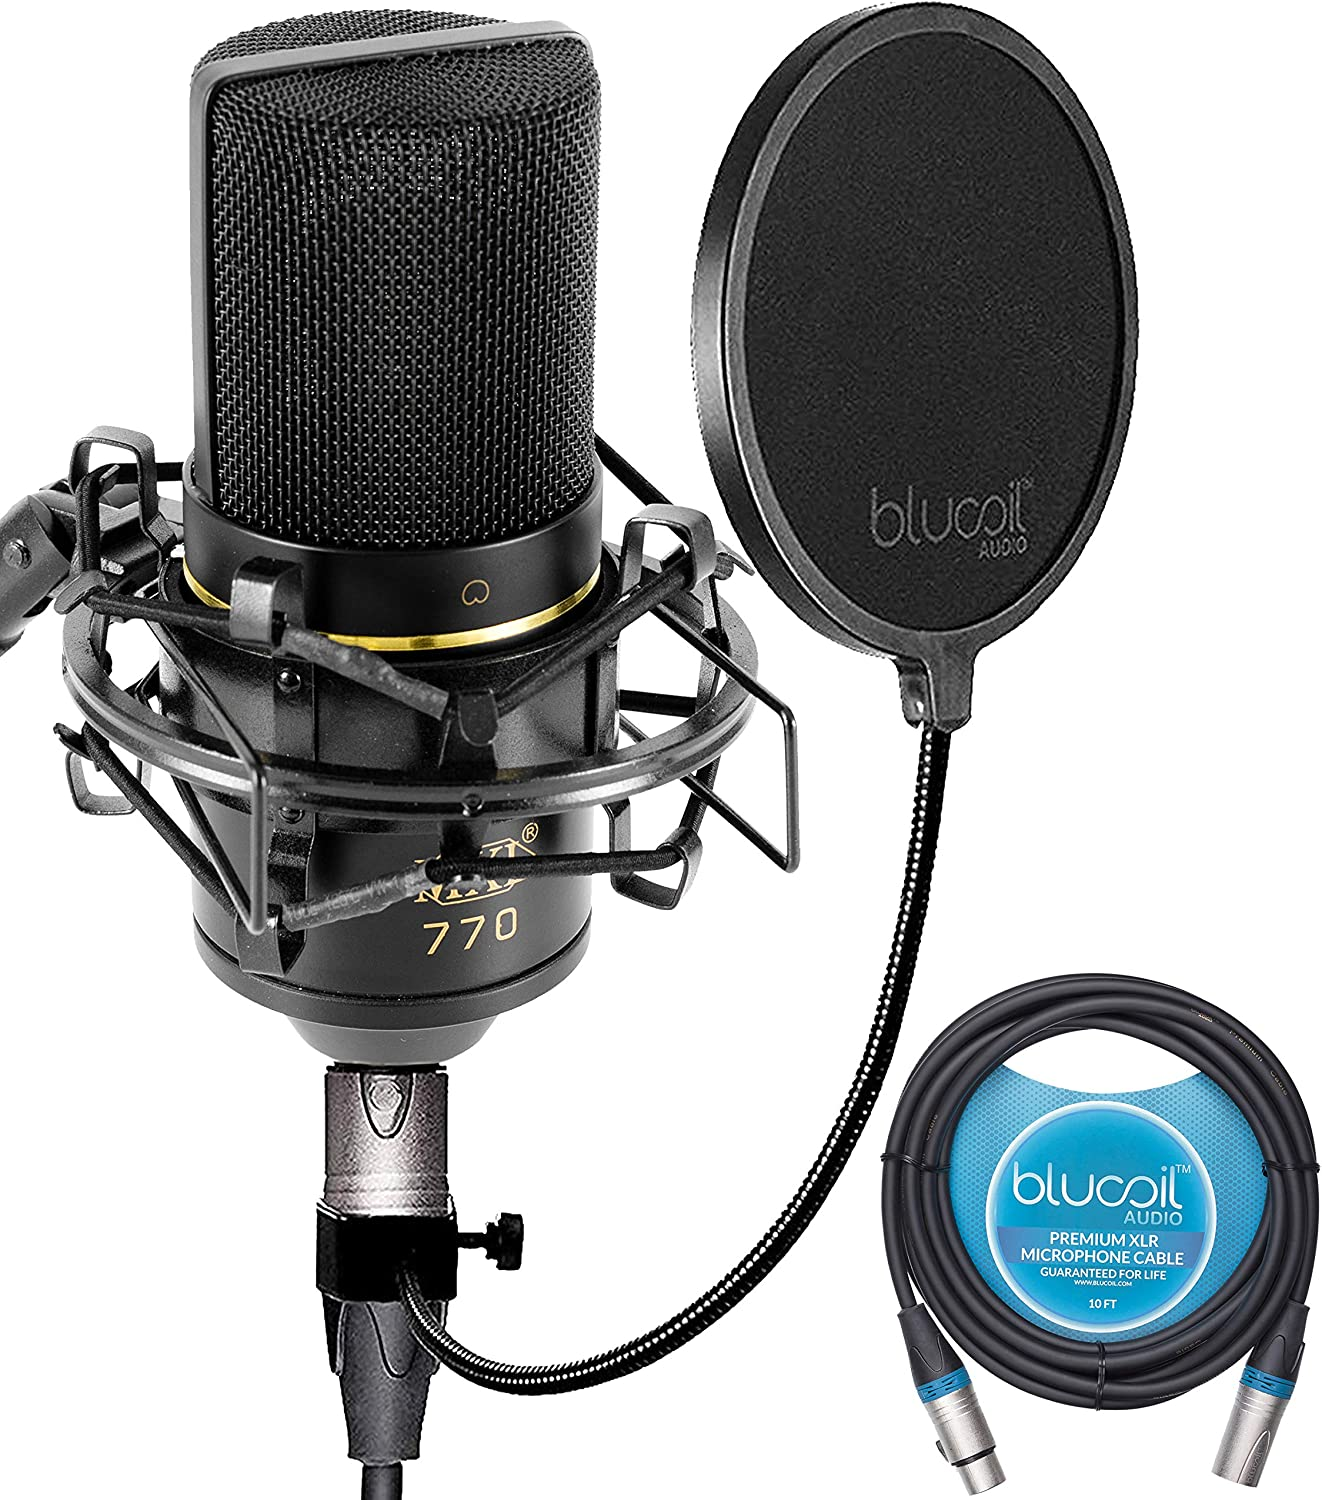 MXL 770 Cardioid Condenser Microphone Bundle with Shock Isolation Mount, Blucoil 10-FT Balanced XLR Cable, and Pop Filter Windscreen